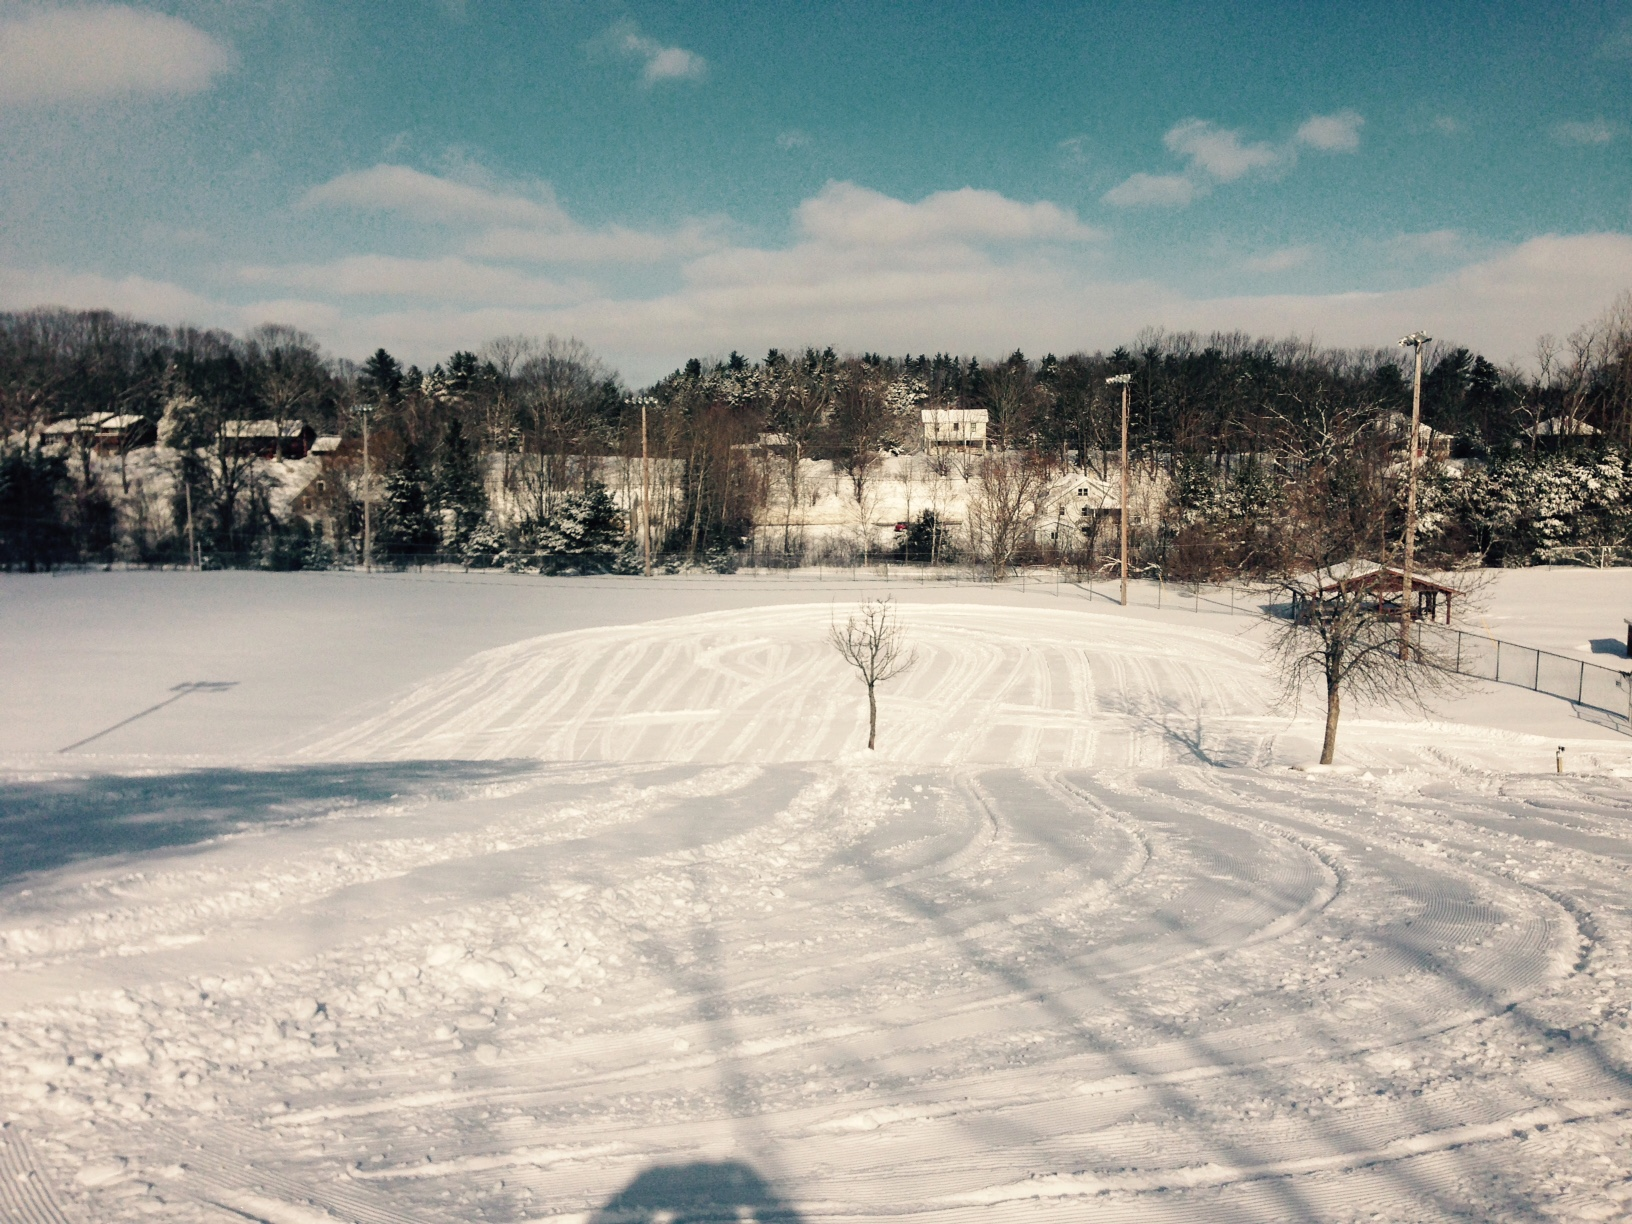 Winter sledding hill in Memorial Park